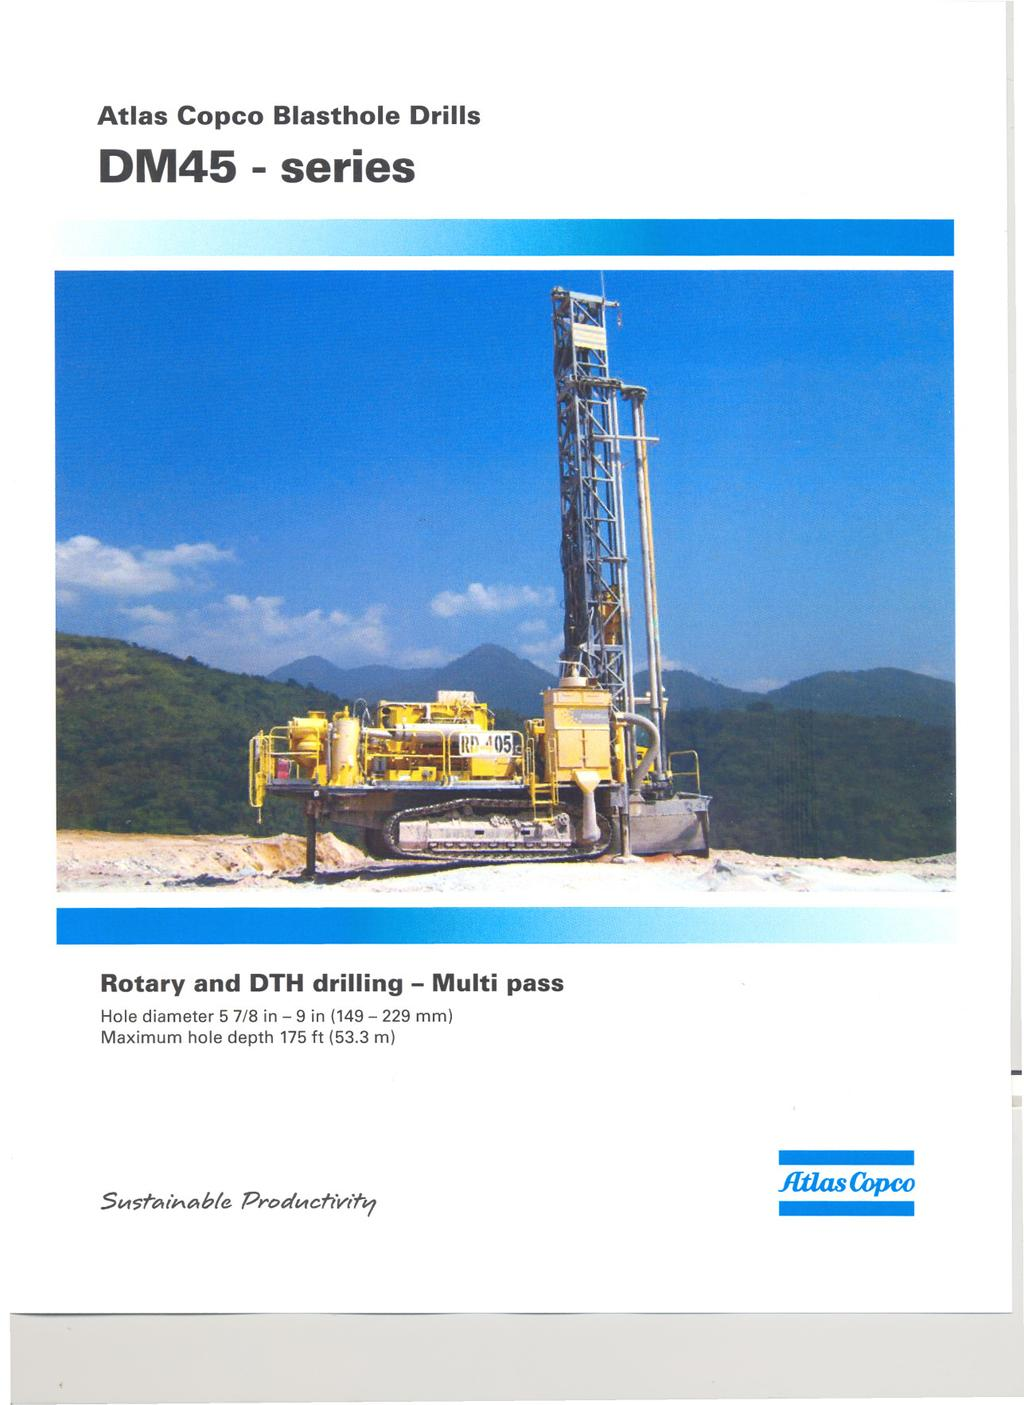 Atlas Copco Blasthole DM45 series Drills,II I II Rotary and DTH drilling Multi